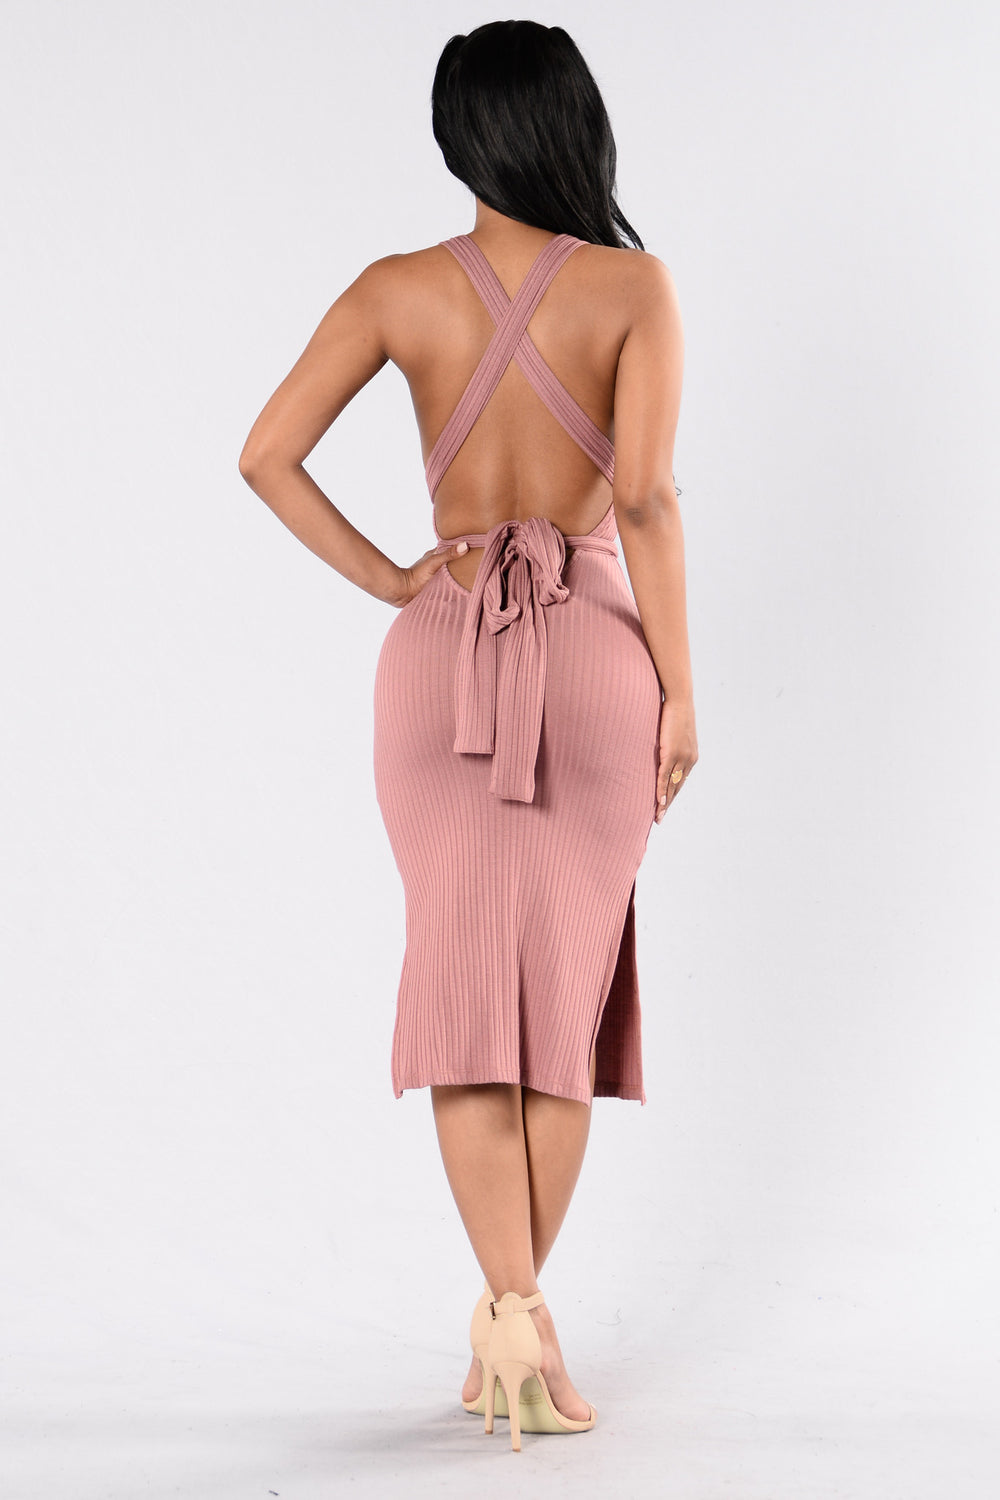 Take On Me Dress - Mauve